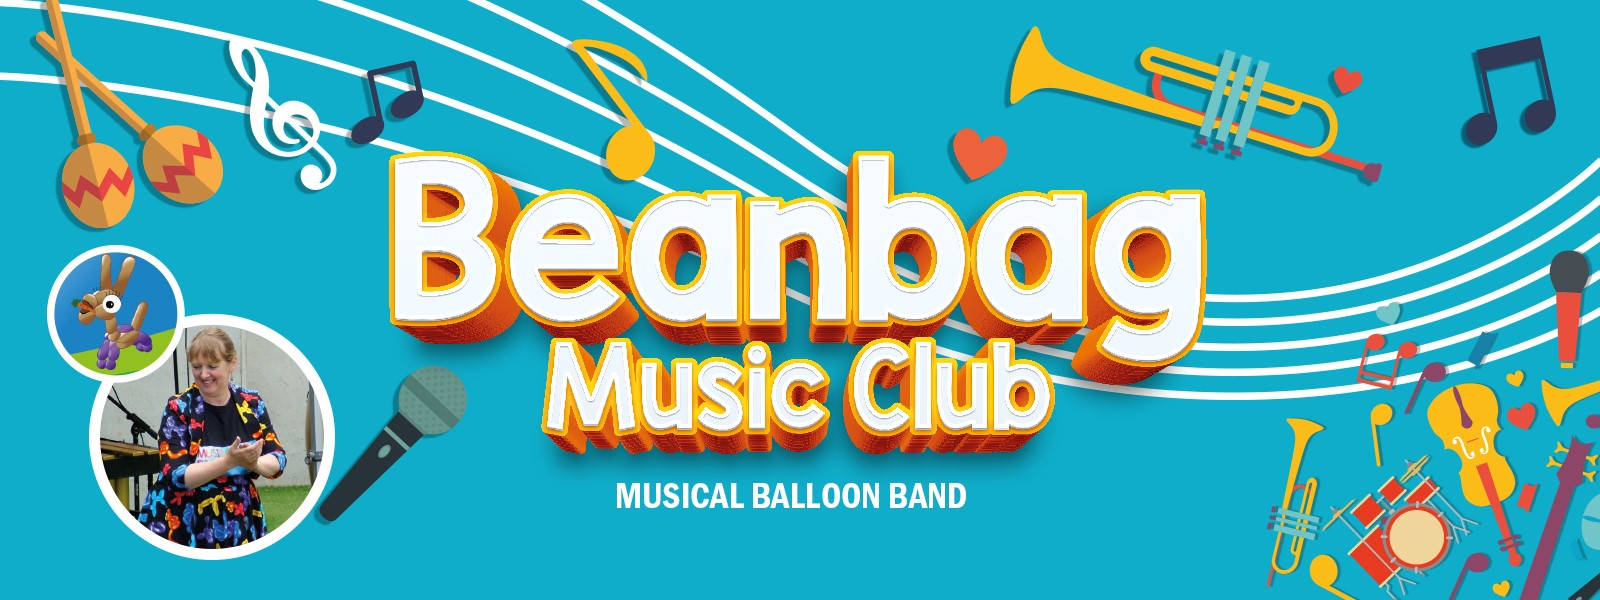 Beanbag Music Club: Musical Balloon Band